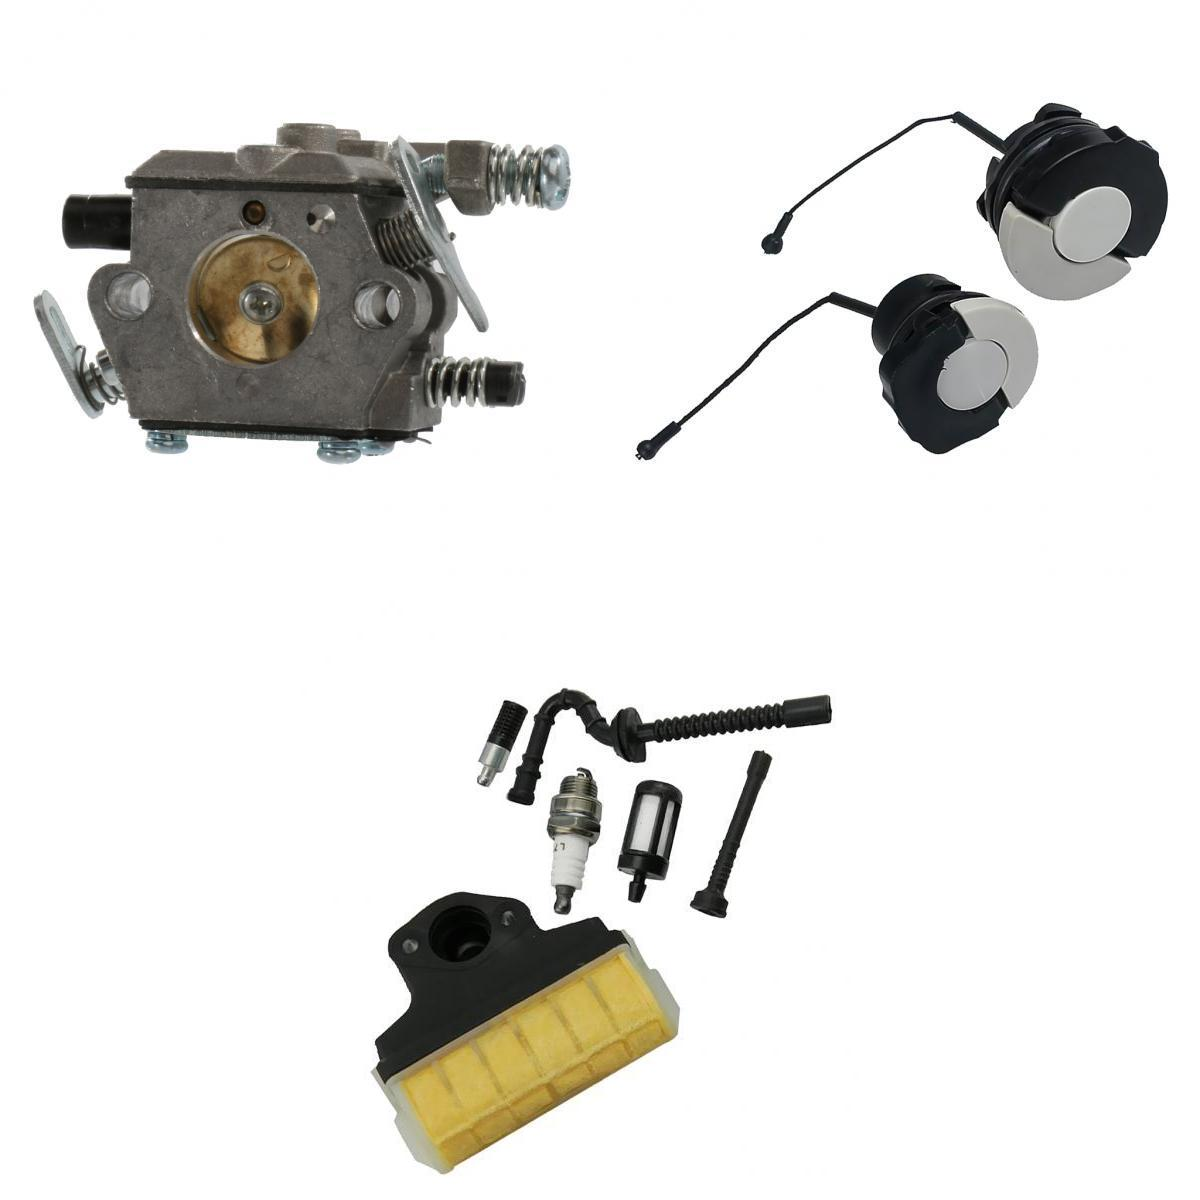 Carburetor, Oil Fuel Filler Cap, Air Filter, Fuel Pipe, Oil Pipe, Spark Plug for STIHL 021 023 025 MS210 MS230 MS250 Chainsaw